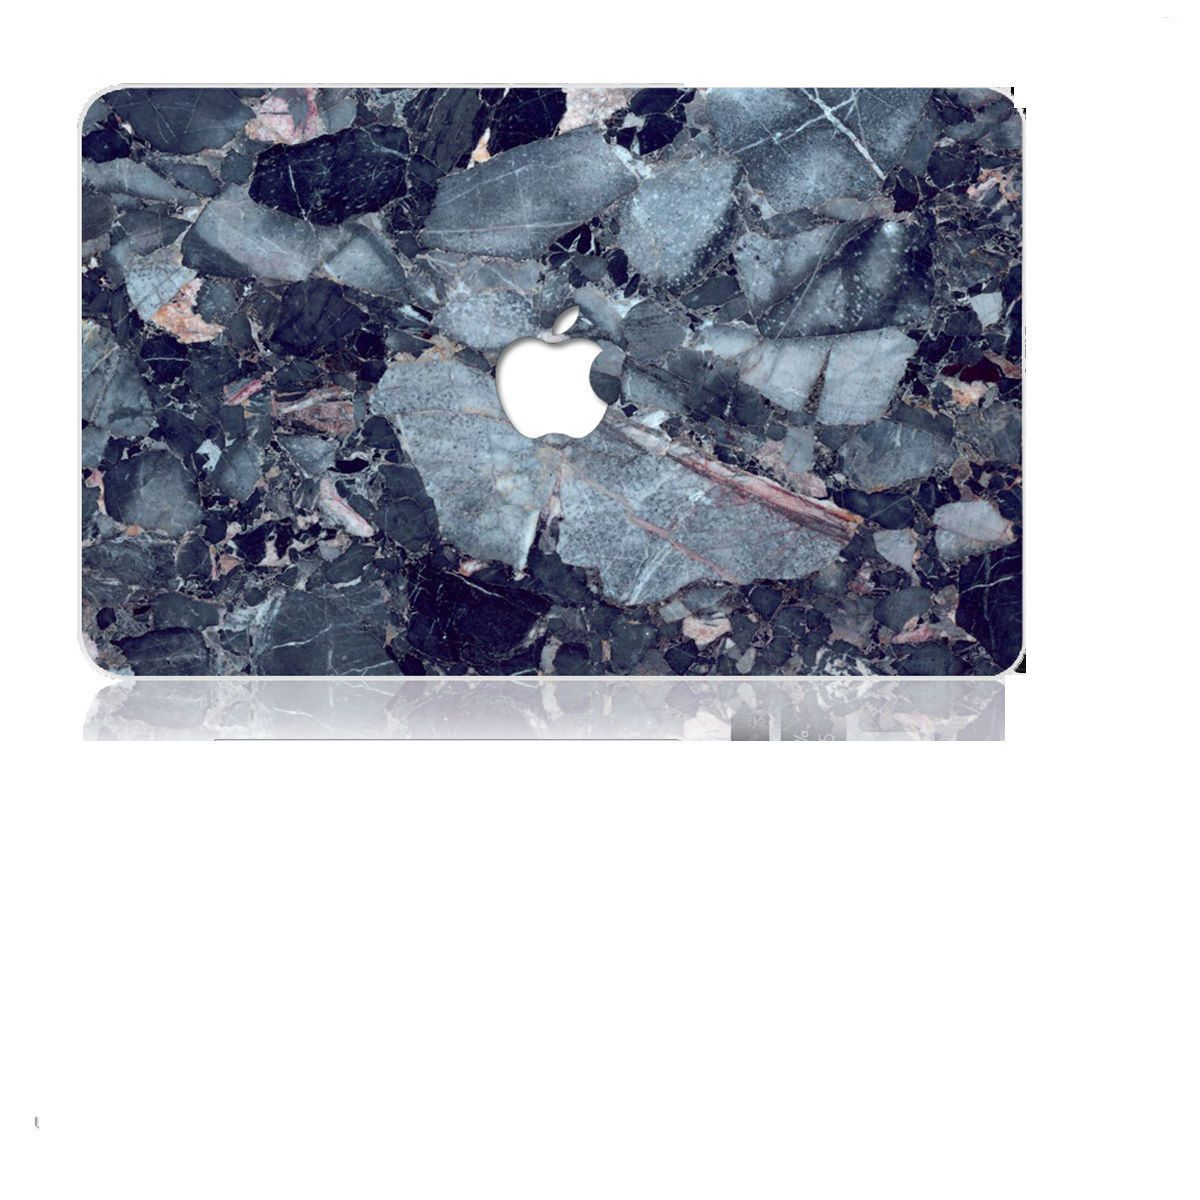 Details about Marble Painting Matt Rubberized Hard Case